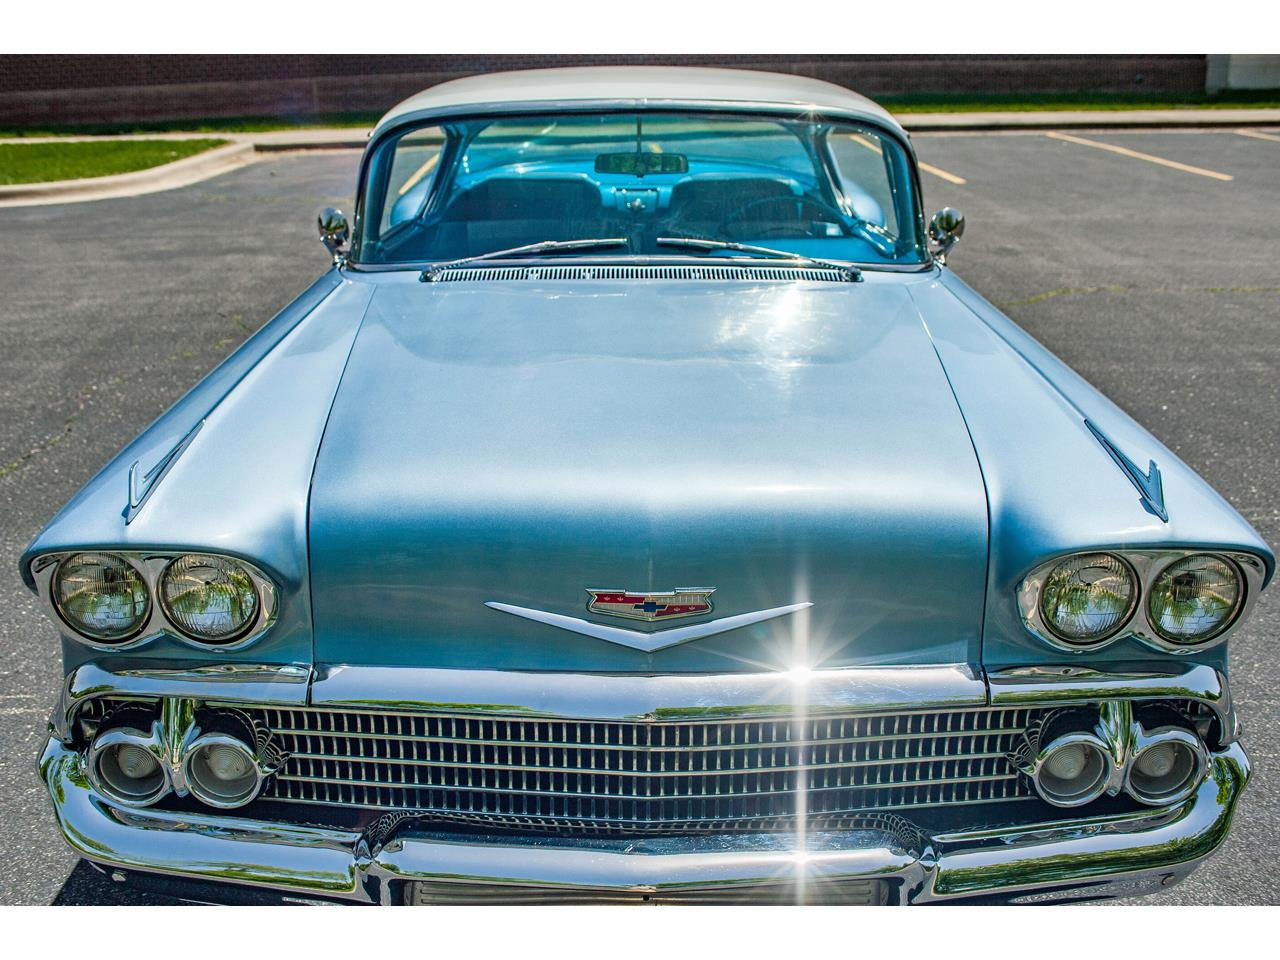 Large Picture of Classic '58 Chevrolet Impala located in Illinois Offered by Gateway Classic Cars - St. Louis - QB9Q